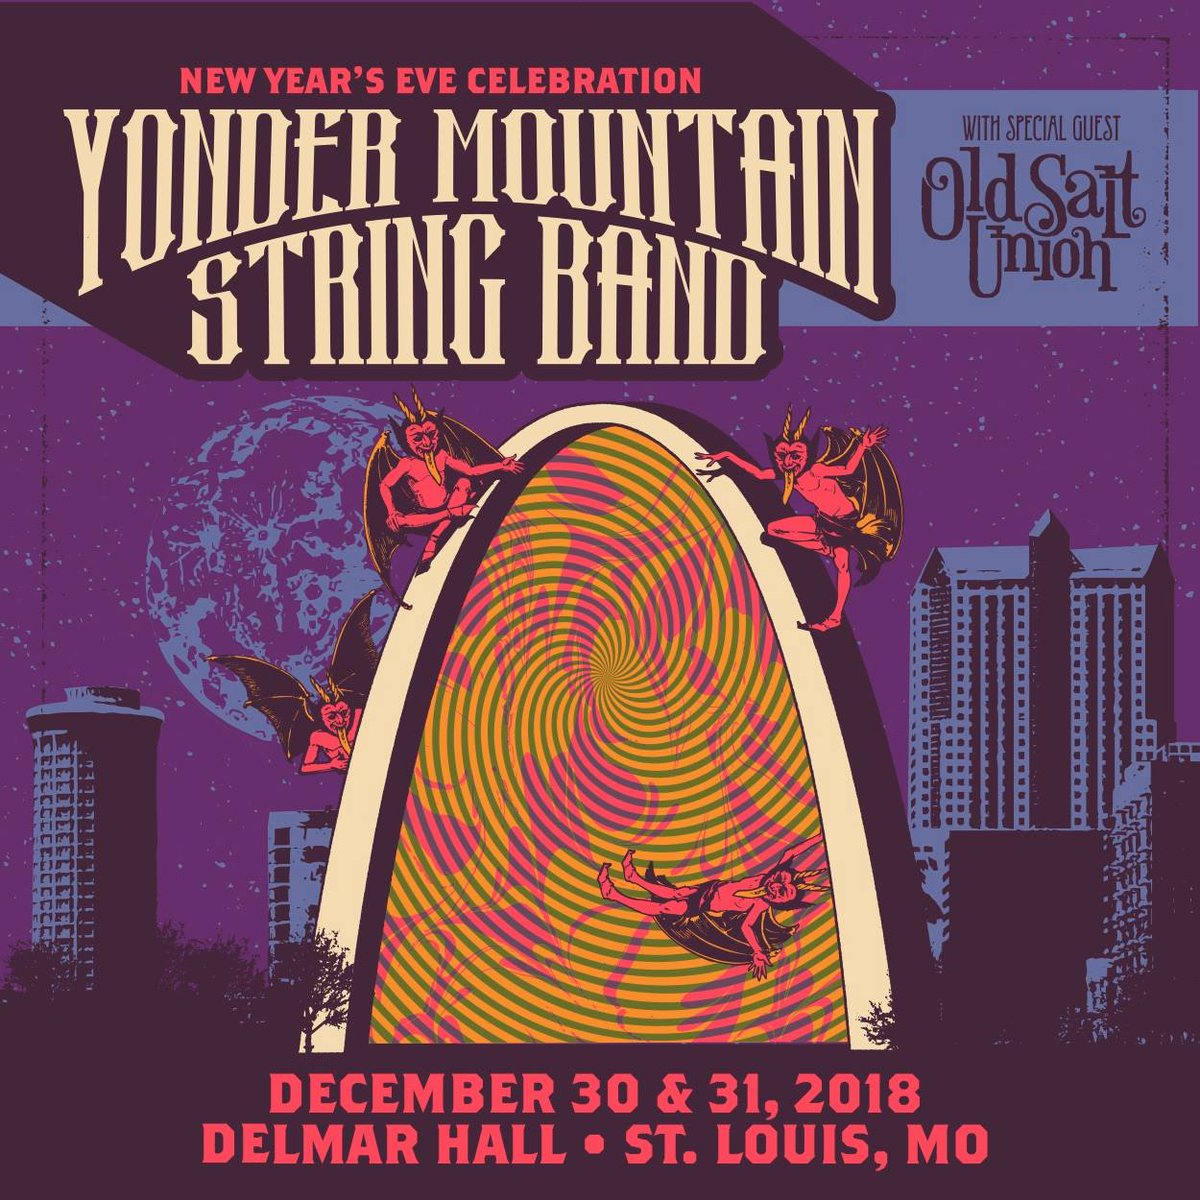 #STL! Well see you at @DelmarHallstl 12/30-31 supporting our friends @YonderMountain! This is our first time playing New Years Eve and we cant wait to bring out all the family and friends to ring it in right! See you soon! Tix: bit.ly/NYE2018presale